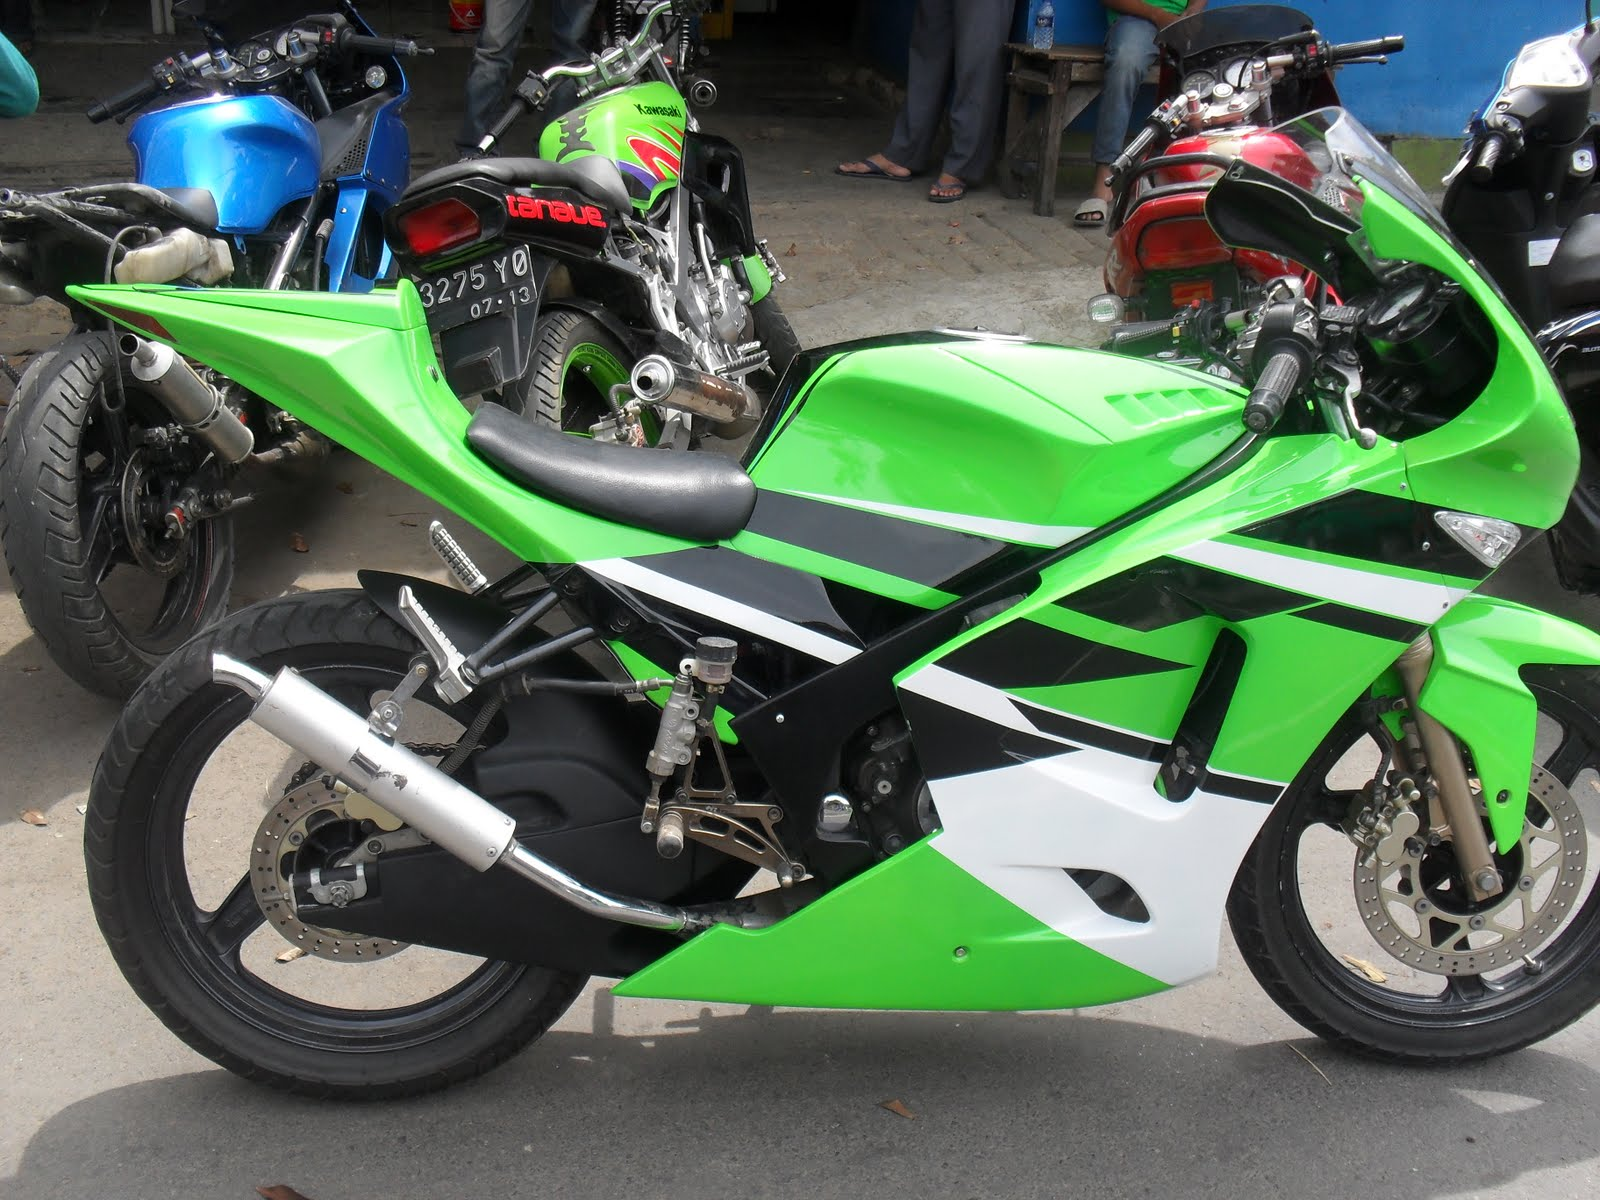 Image of Ninja Rr 250 Modif